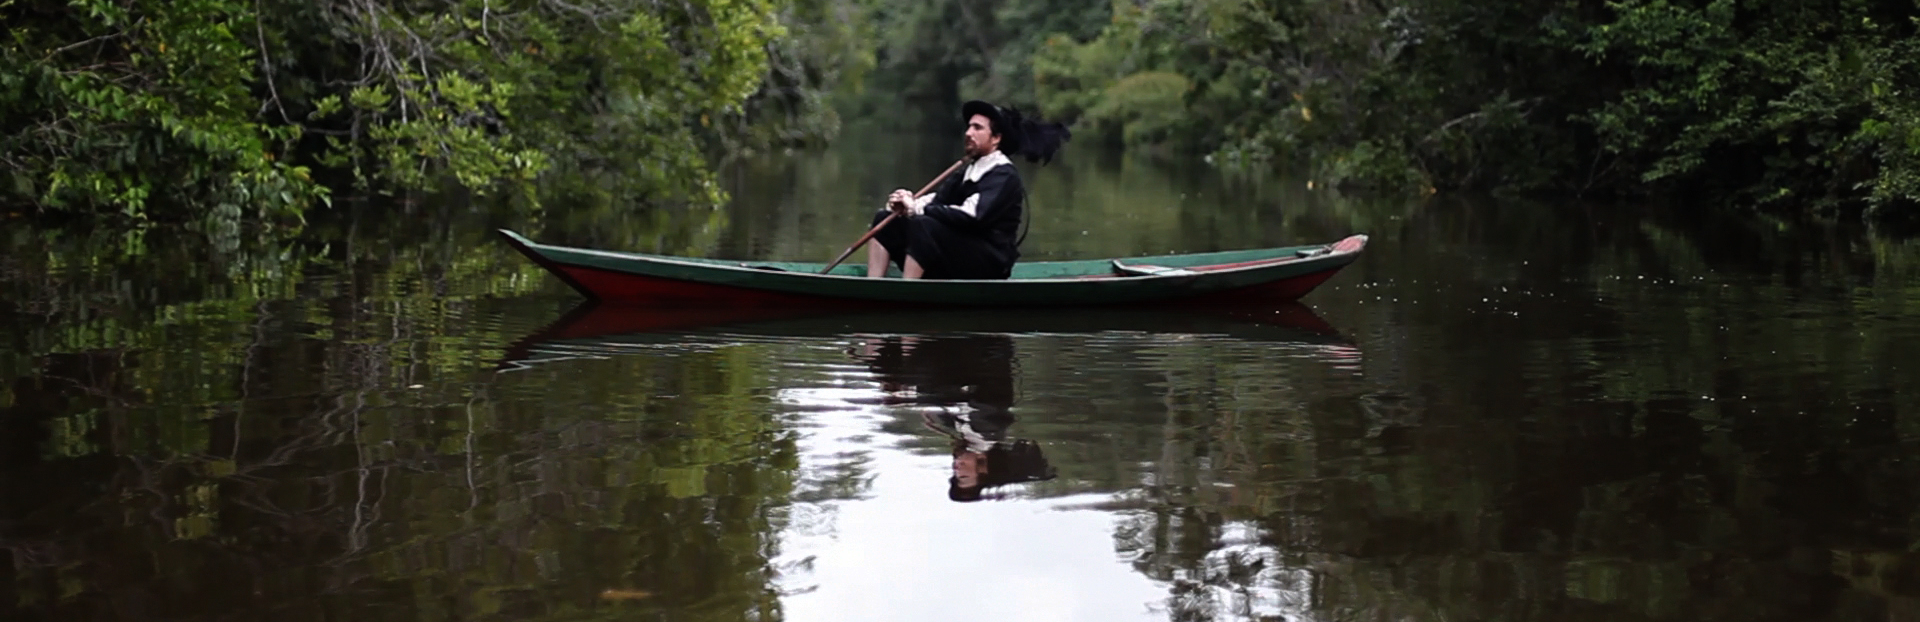 'Remapping the New World'    JOURNEY TO A LAND OTHERWISE UNKNOWN / VOYAGE EN LA TERRE AUTREMENT DITE  (Laura Huertas Millán, Colombia/France, 2011, 22 min. In French with English subtitles. New York Premiere)  NEFANDUS  (Carlos Motta, U.S./Colombia, 2013, 13 min. In Spanish and Kogi with English subtitles. New York Premiere)  EX ISTO / EX IT  (Cao Guimarães, Brazil, 2010, 86 min. In Portuguese, with English subtitles)  Three visual artists reconsider the 'New World,' providing provocative alternative cartographies. Laura Huertas Millán's  Journey to a Land Otherwise Know —shot at a tropical greenhouse in Lille, France—uses textual accounts by European colonizers to create a fake ethnography of the New World critical of the ever-prevailing exoticism. In Carlos Motta's visual essay  Nefandus , an indigenous man and a Spanish-speaking man tell stories about acts of sodomy that took place in the Americas during the conquest, while Carlos Guimarães Ex Isto  presents a historical provocation imaging French philosopher René Descartes on a tropical journey in Brazil. Followed by a discussion with director Carlos Motta.    Friday, August 8, 1pm